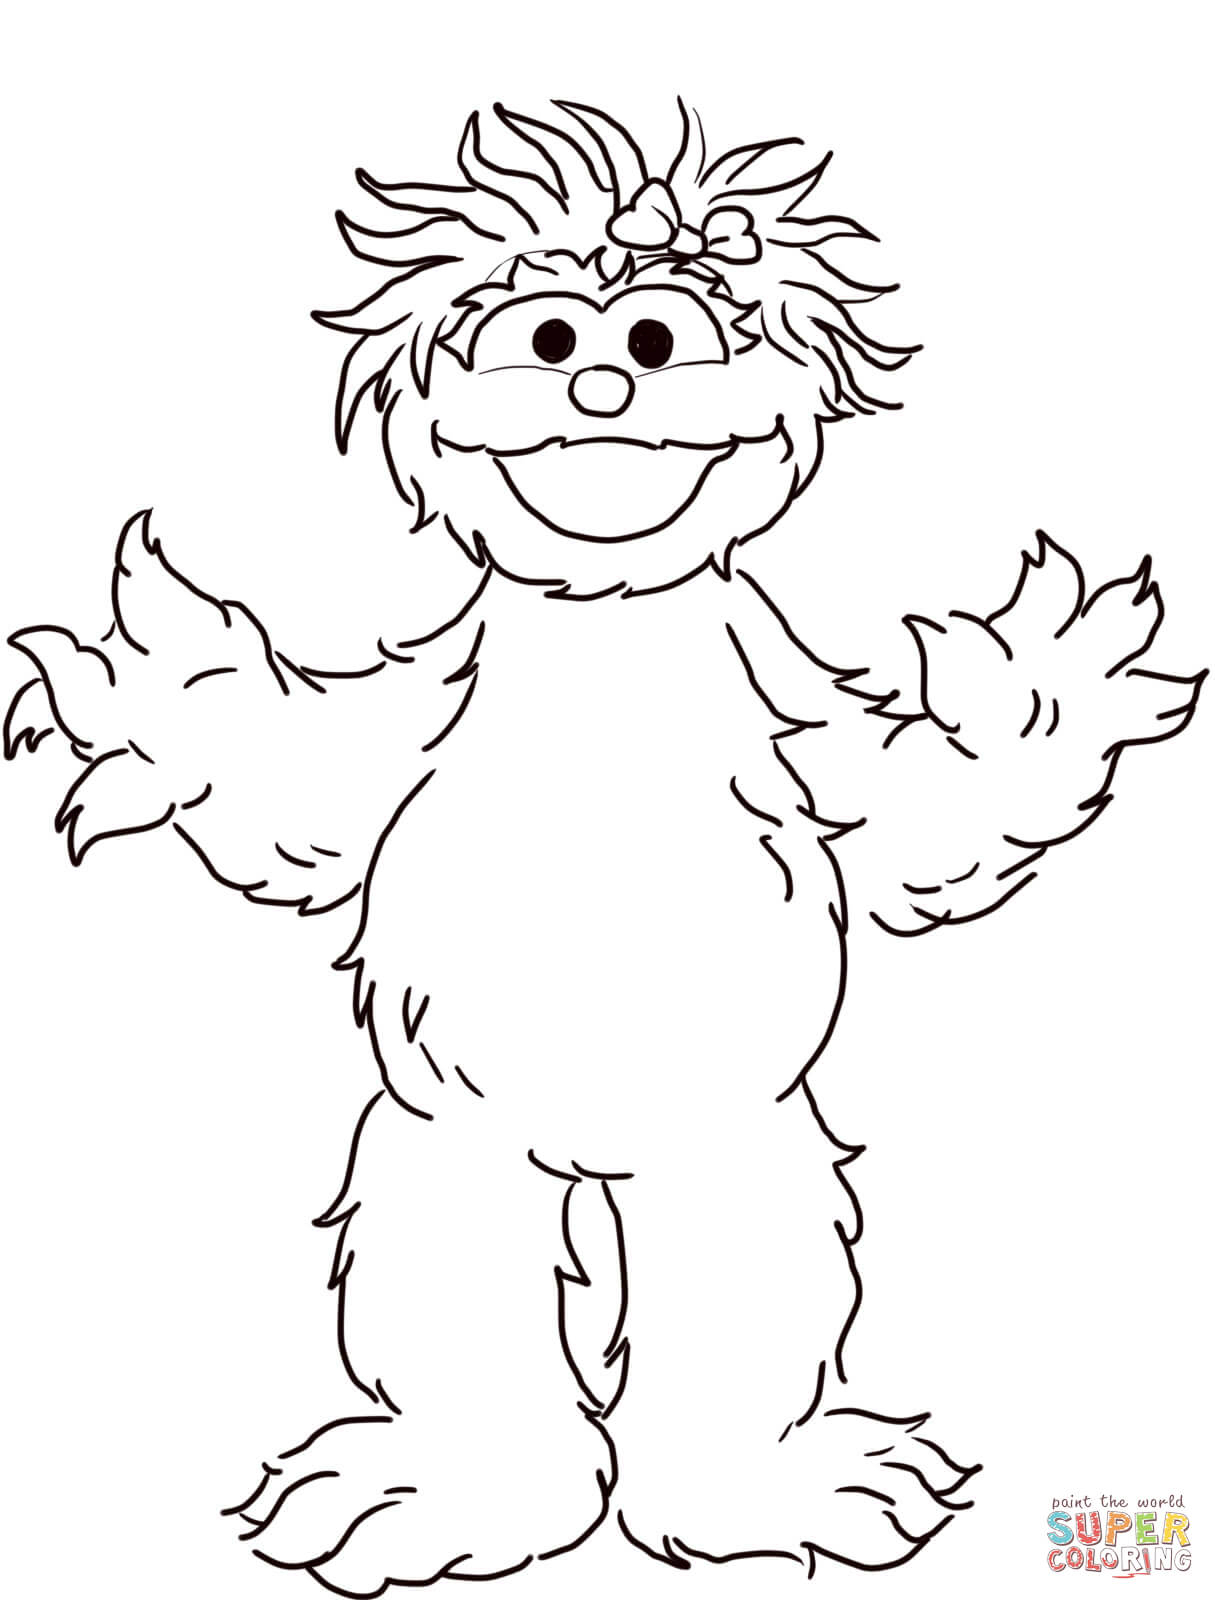 The Best Free Ernie Drawing Images Download From 32 Free